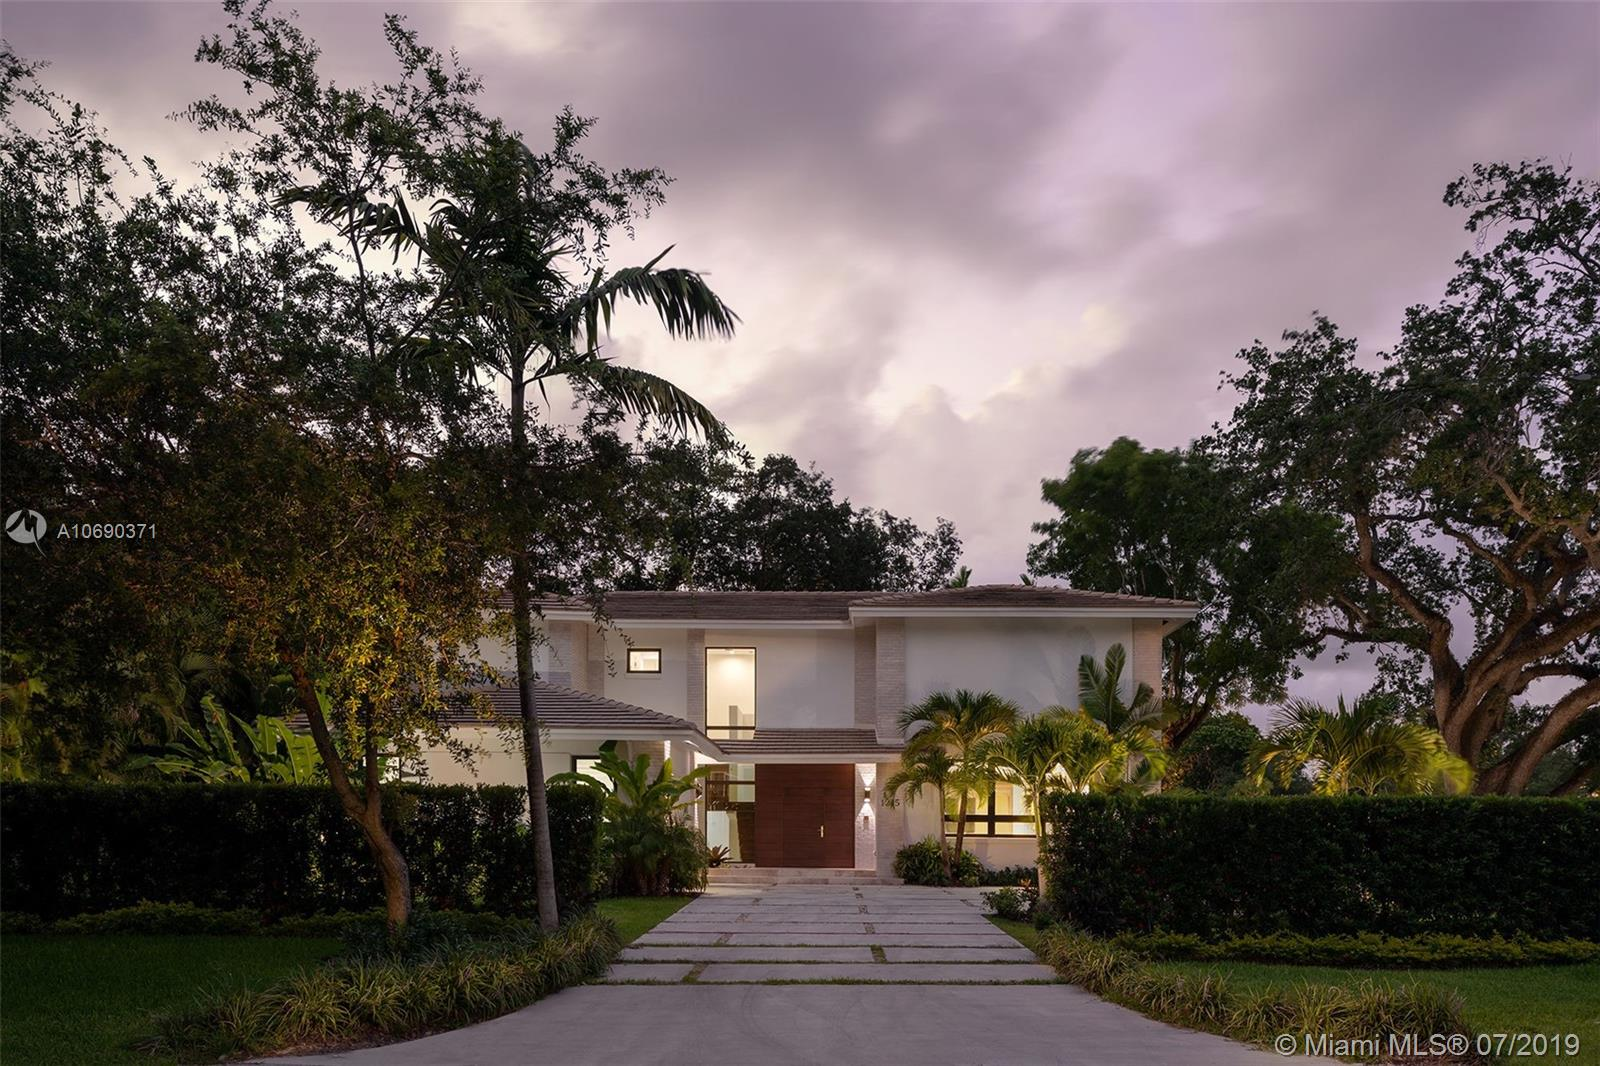 """Alongside Riviera Country Club and Golf Course in the """"city beautiful"""". This new two-story single family home combines a classic façade construction with a modern twist, open floor plans, high ceilings, sky lights; top of the line appliances, porcelanosa bathroom fixtures and a riza terrace in a tropical oasis."""